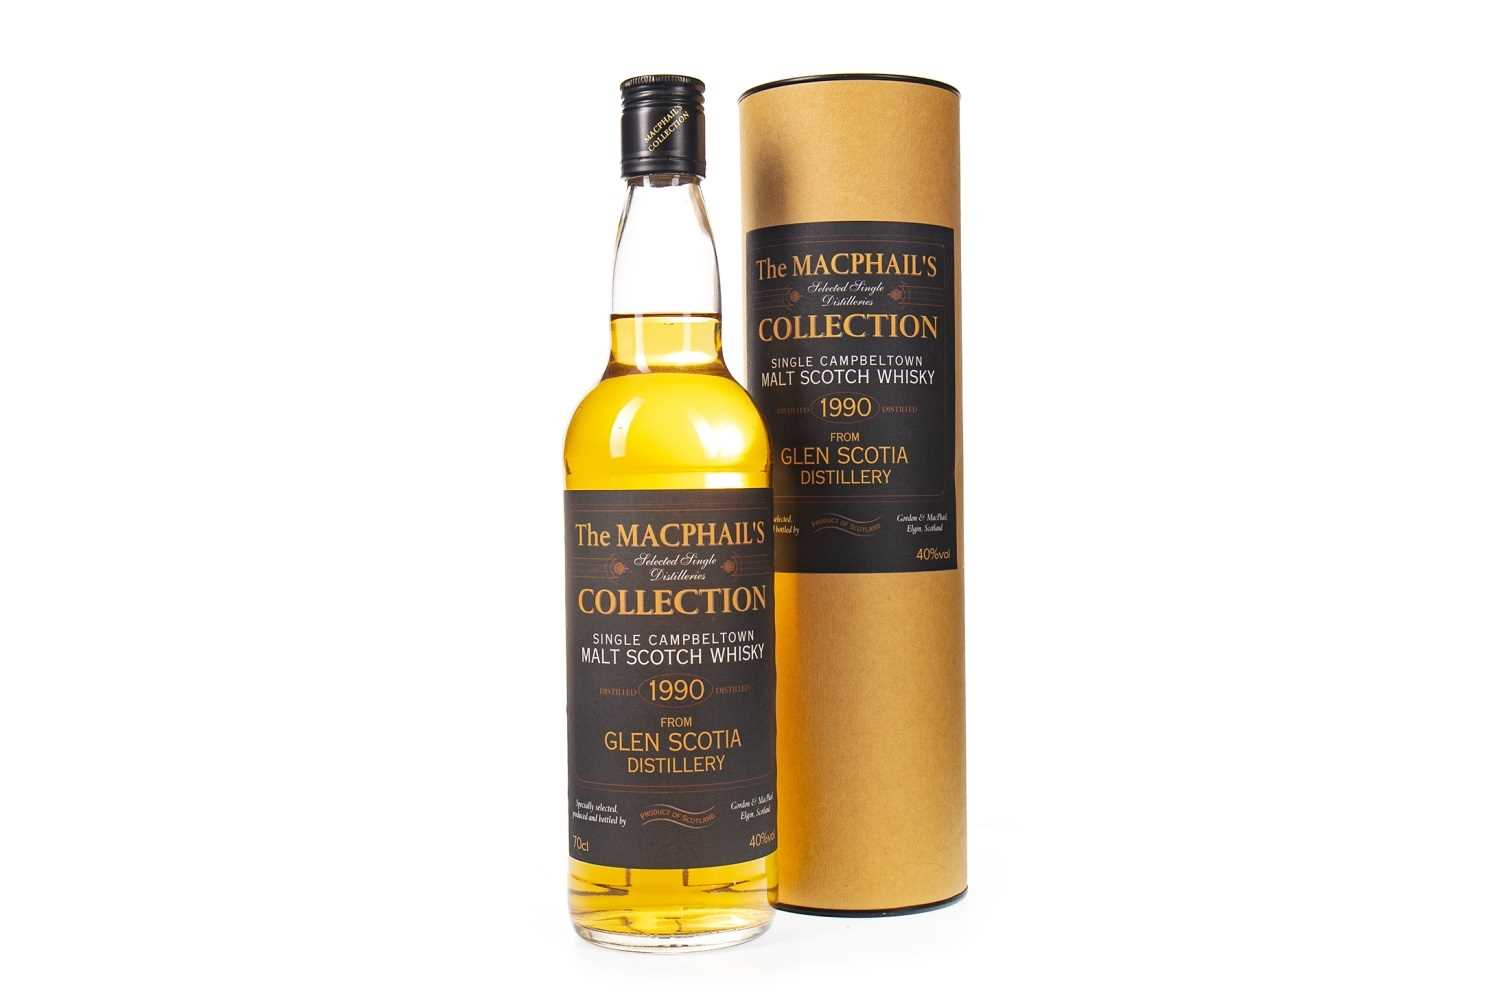 Lot 327-GLEN SCOTIA 1990 MACPHAIL'S COLLECTION